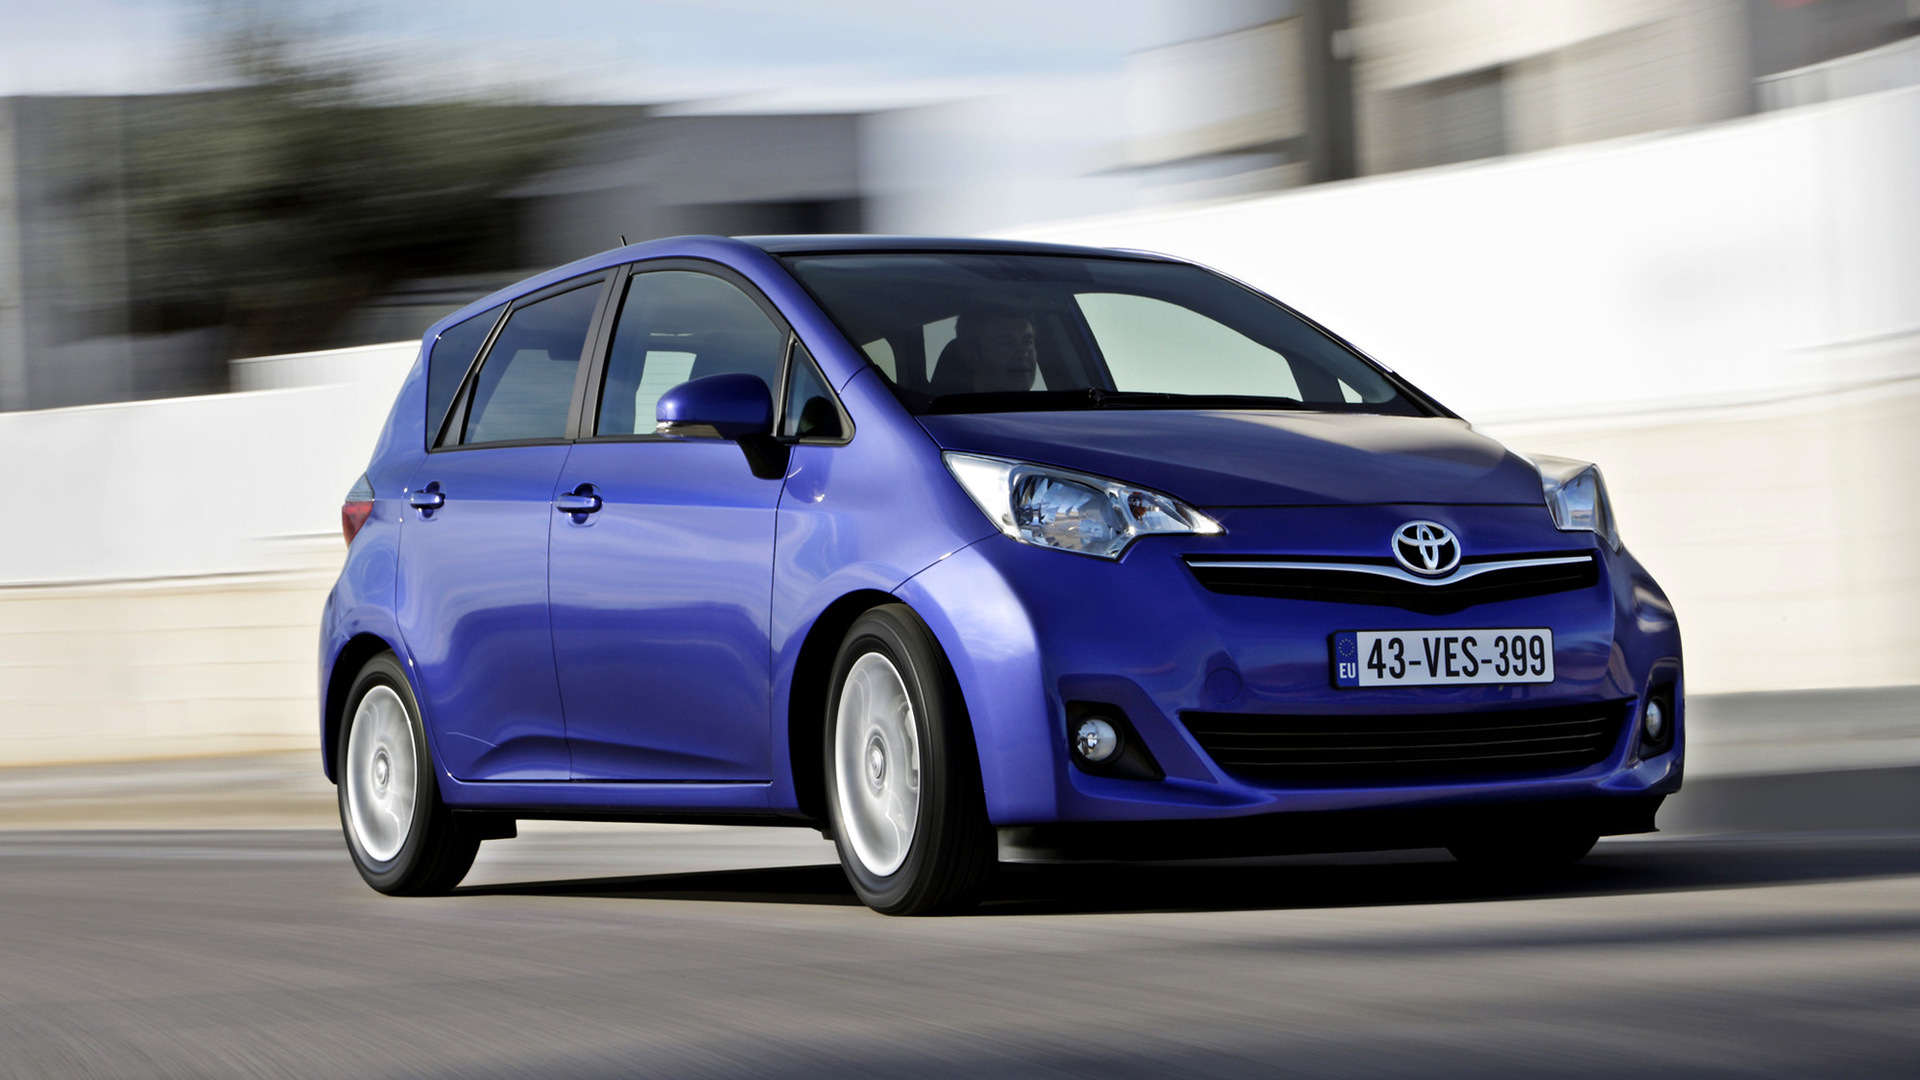 toyota verso s 2010 wallpapers and hd images car pixel. Black Bedroom Furniture Sets. Home Design Ideas